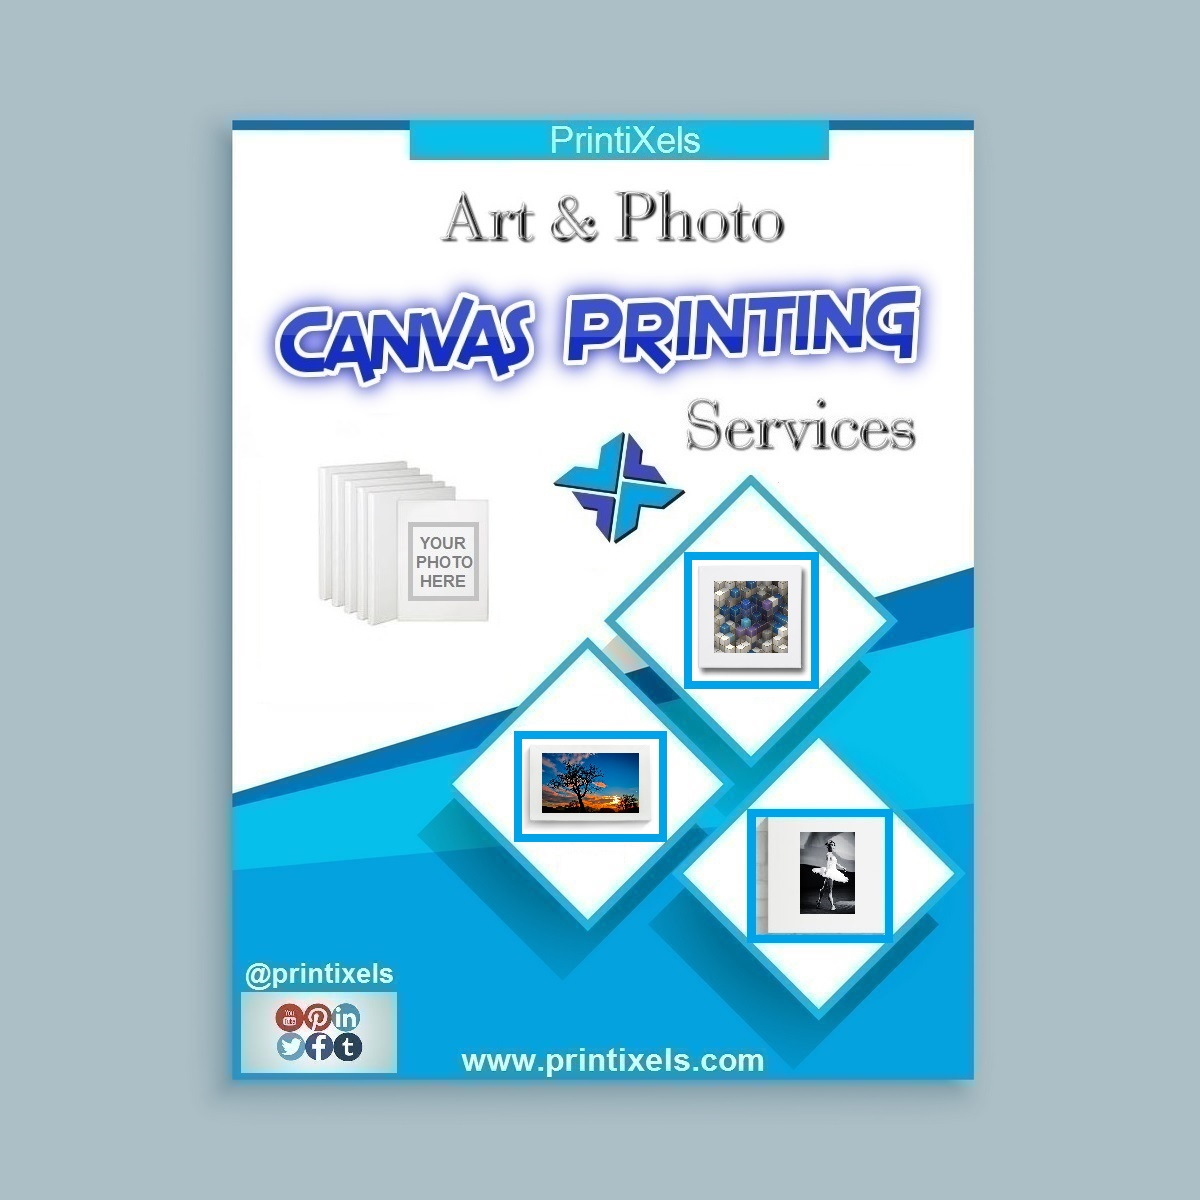 Art & Photo on Canvas Printing Services